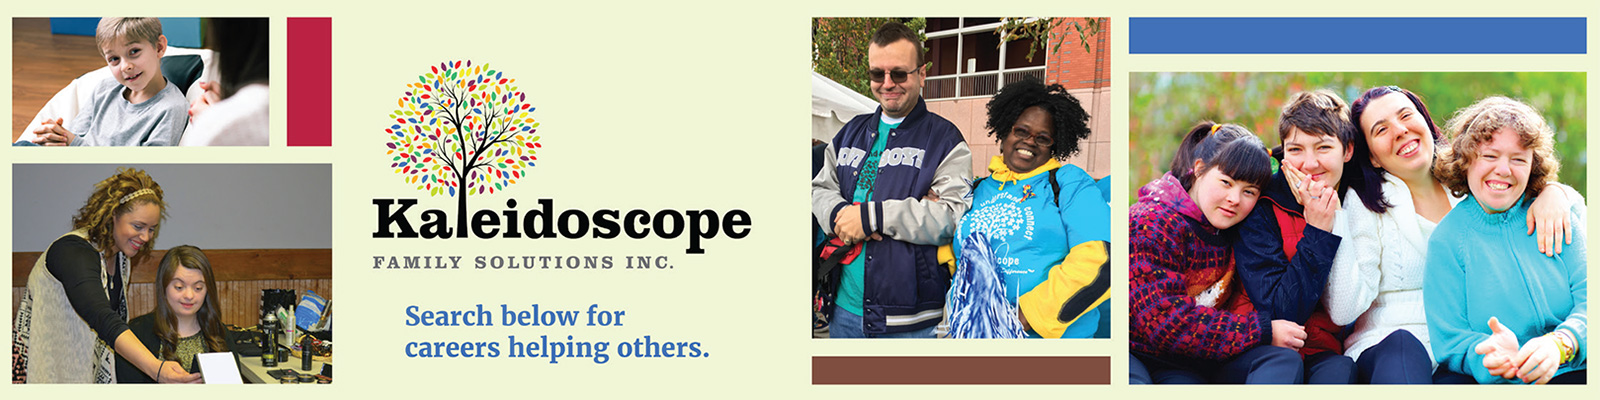 Kaleidoscope Family Solutions Inc Contract Search banner image